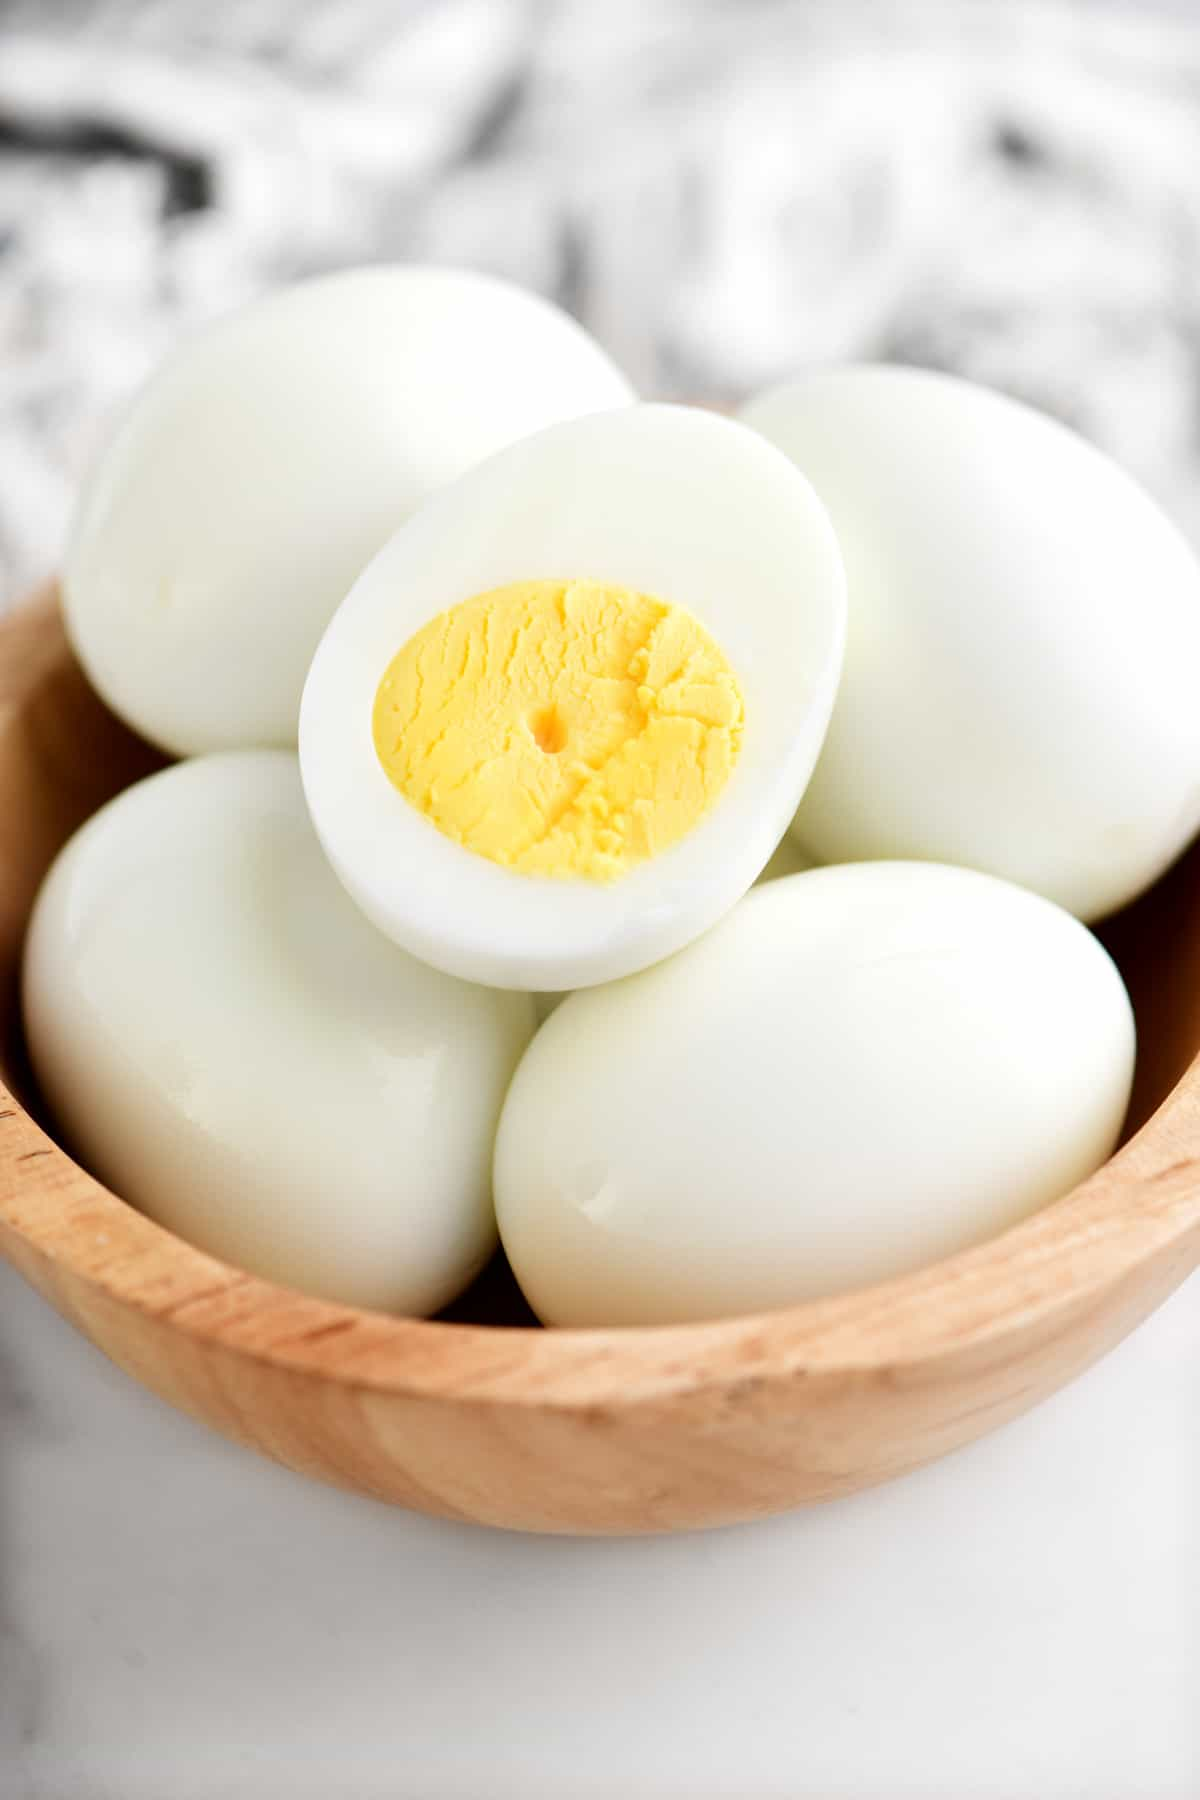 hard boiled eggs in a bowl, one is cut in half